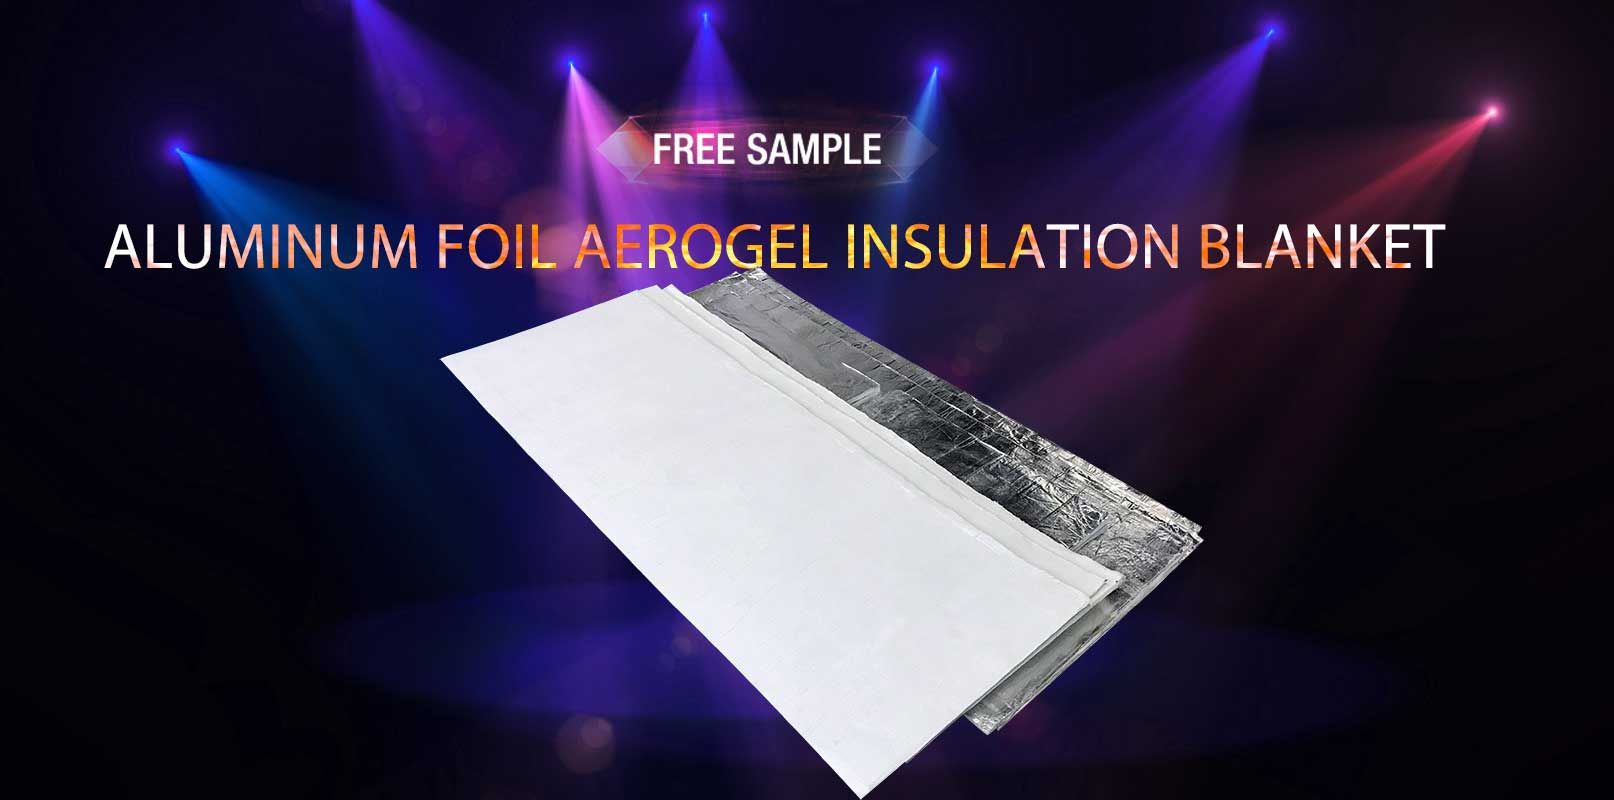 Foil Insulation Blanket Aluminum Foil Aerogel Insulation Blanket Aerogel Felt